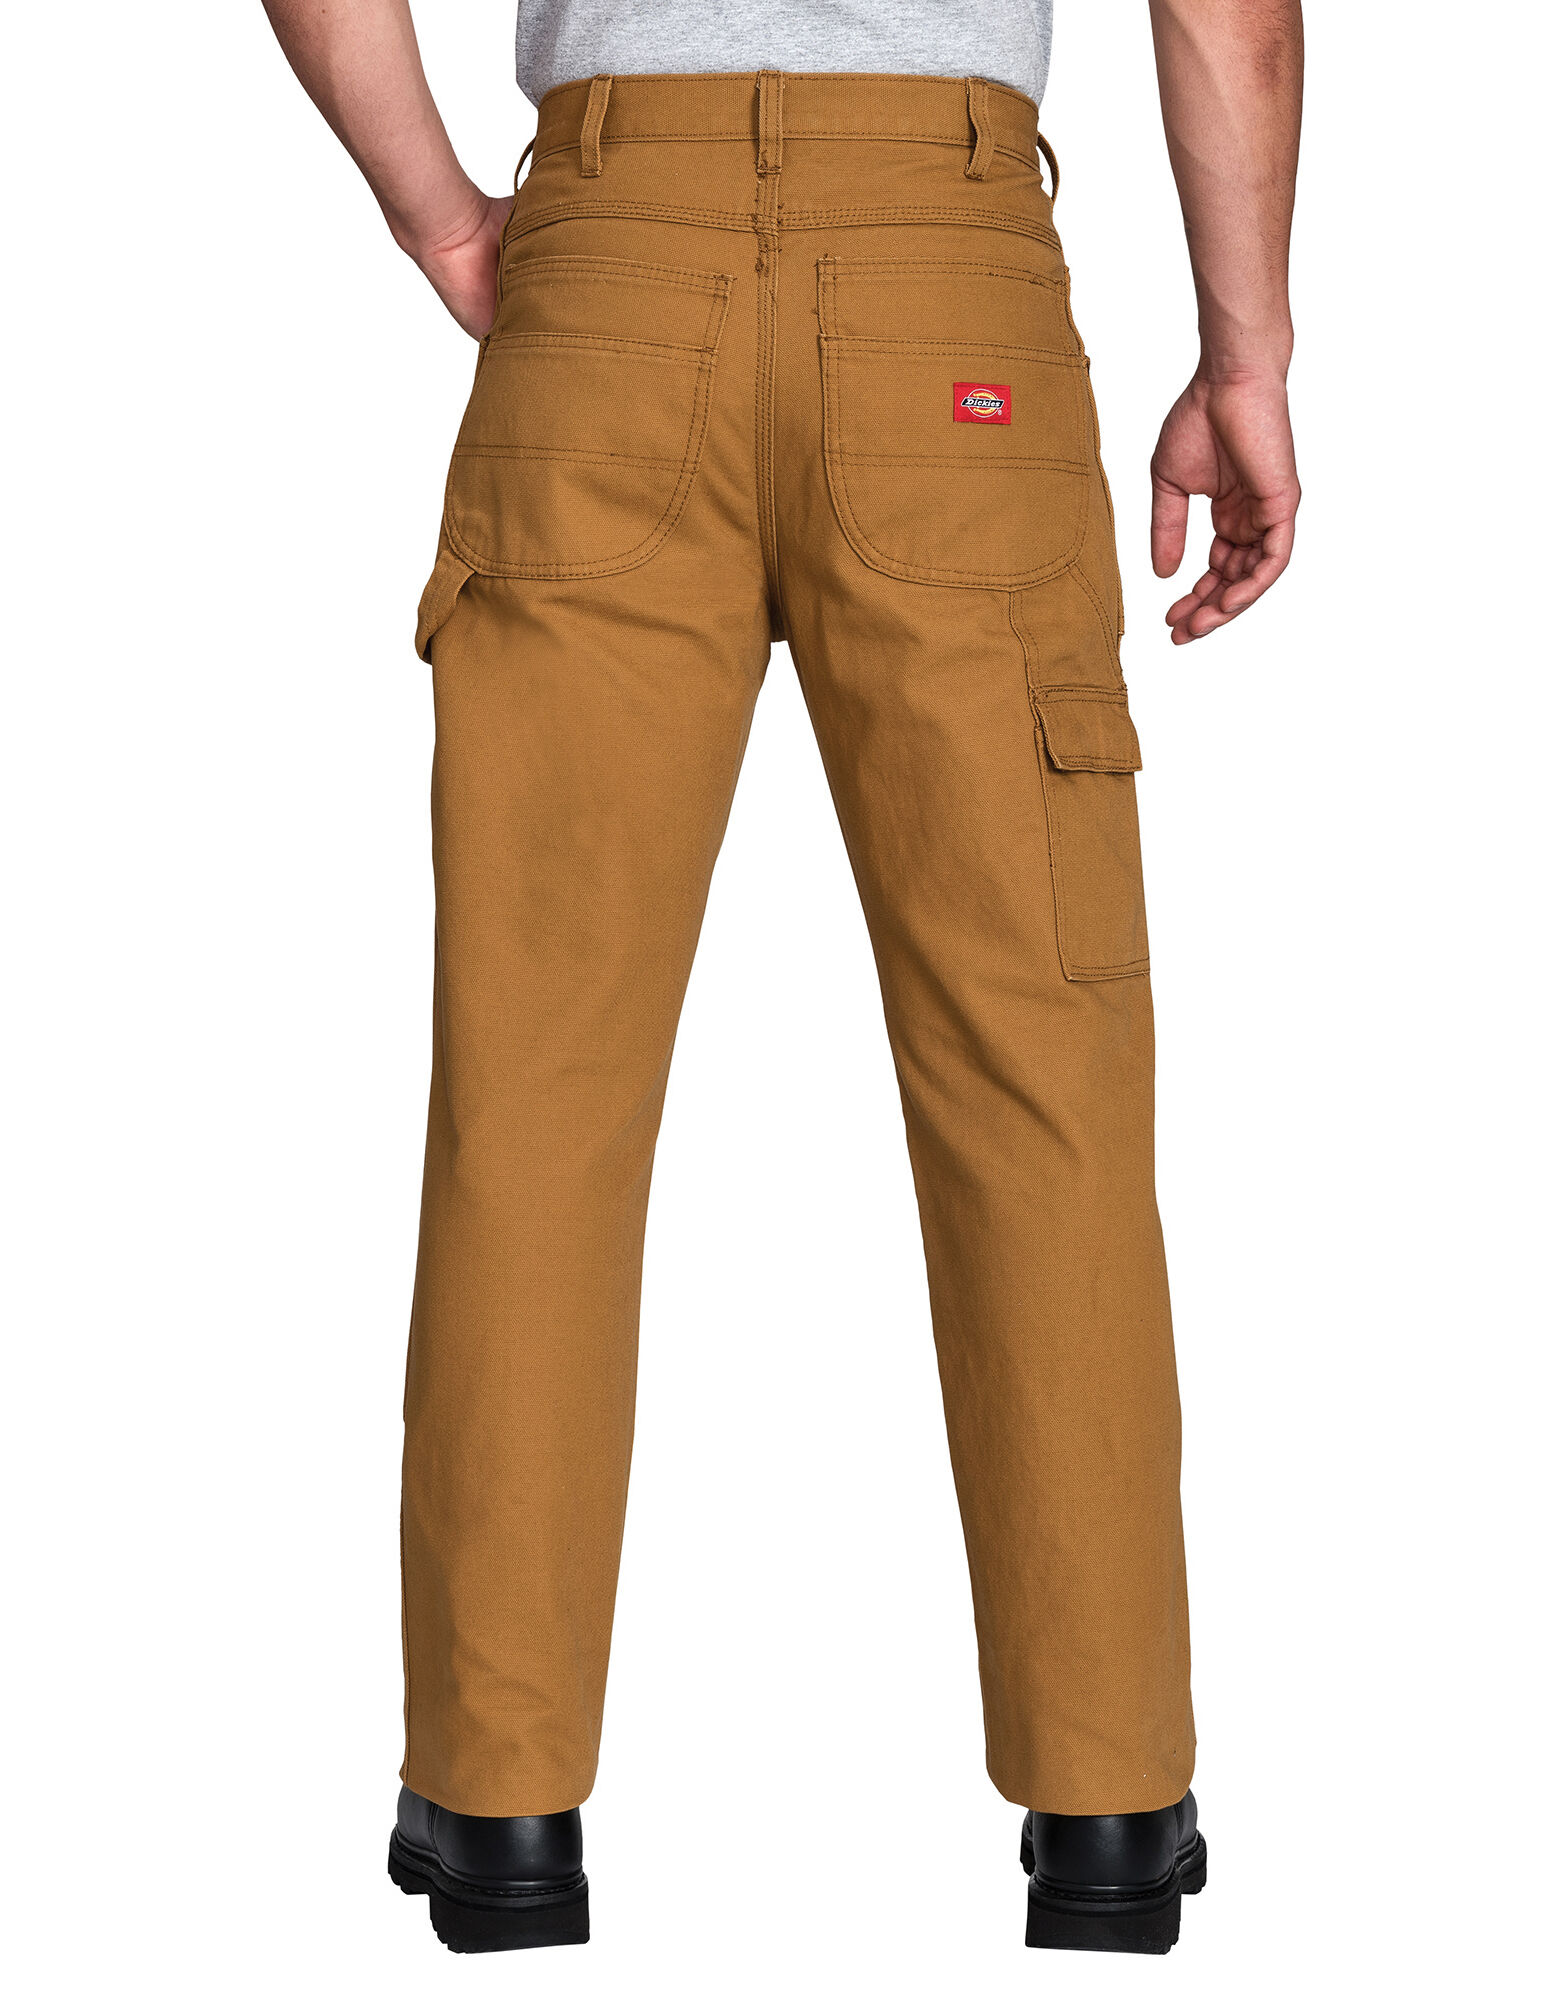 Pantalon de bucheron en coutil dickies - Pantalon de bucheron ...